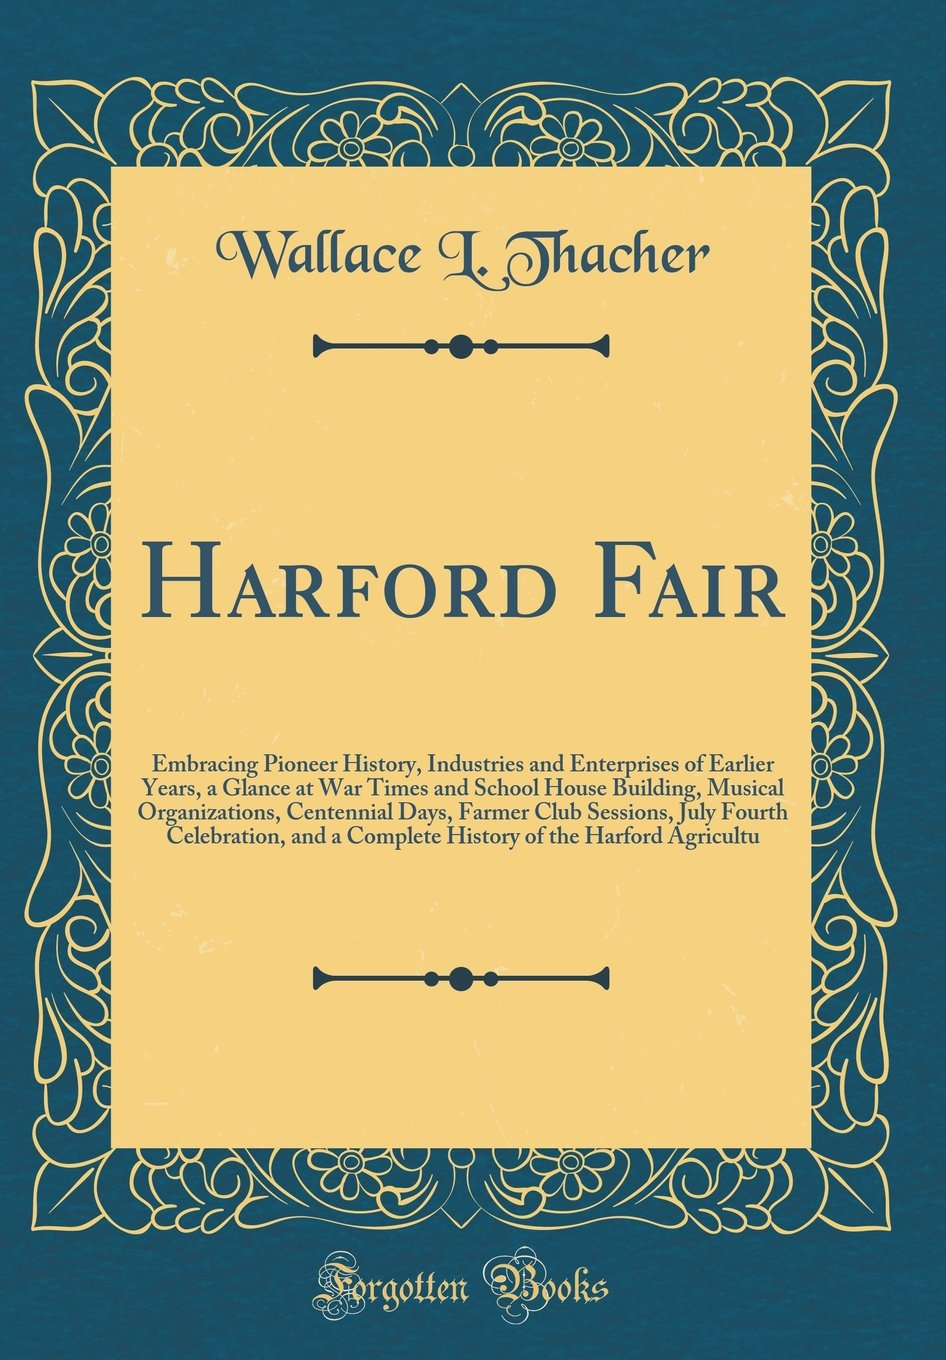 Download Harford Fair: Embracing Pioneer History, Industries and Enterprises of Earlier Years, a Glance at War Times and School House Building, Musical ... and a Complete History of the Har pdf